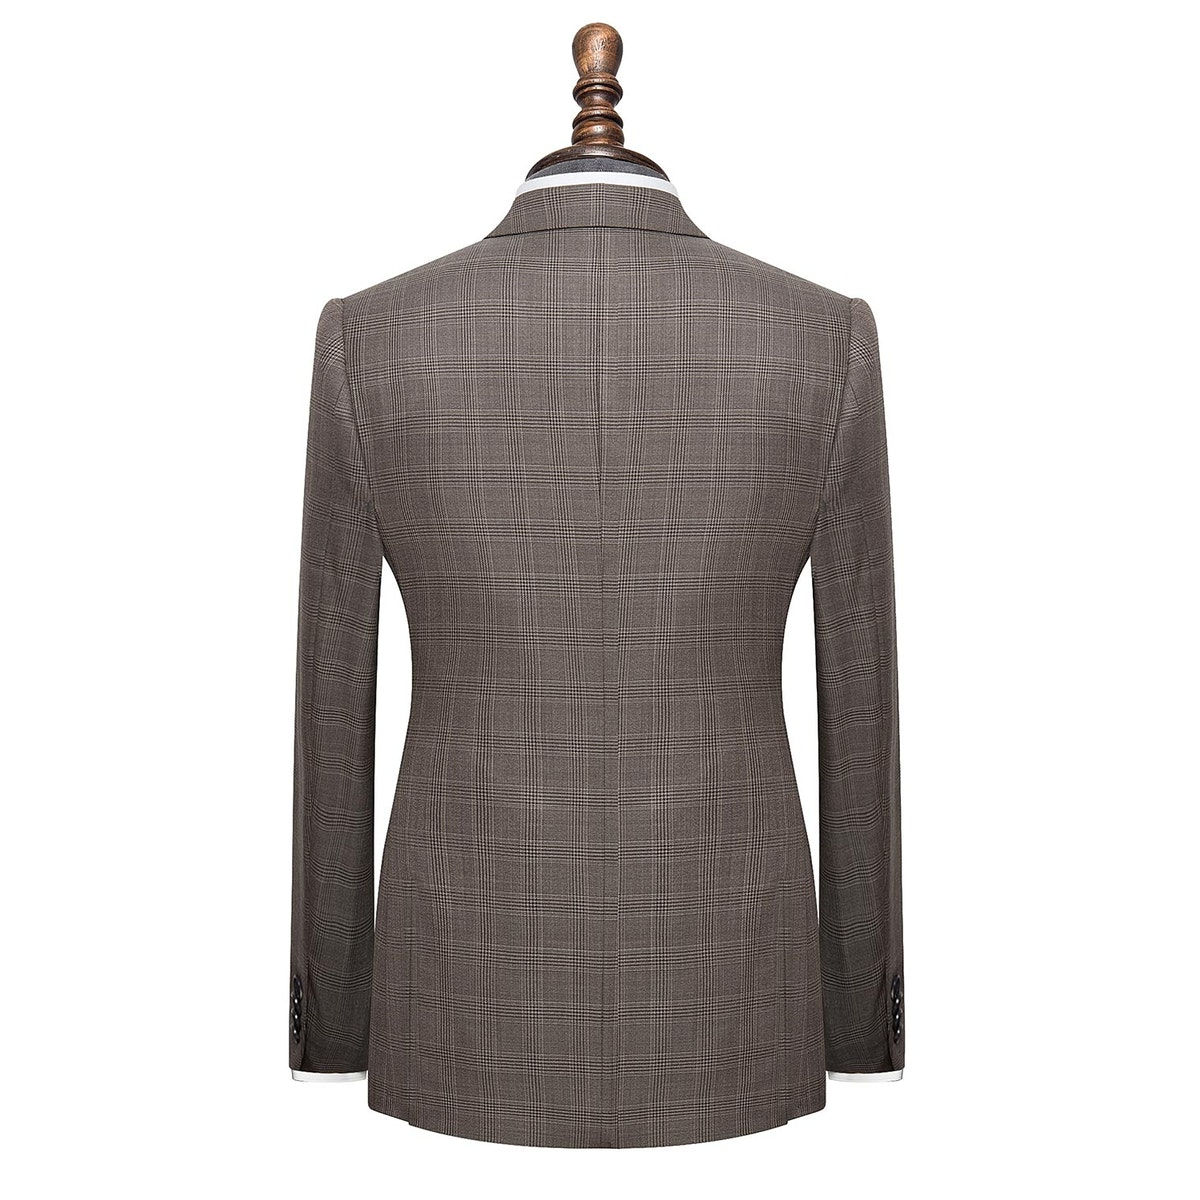 InStitchu Collection The Grangemouth mens suit